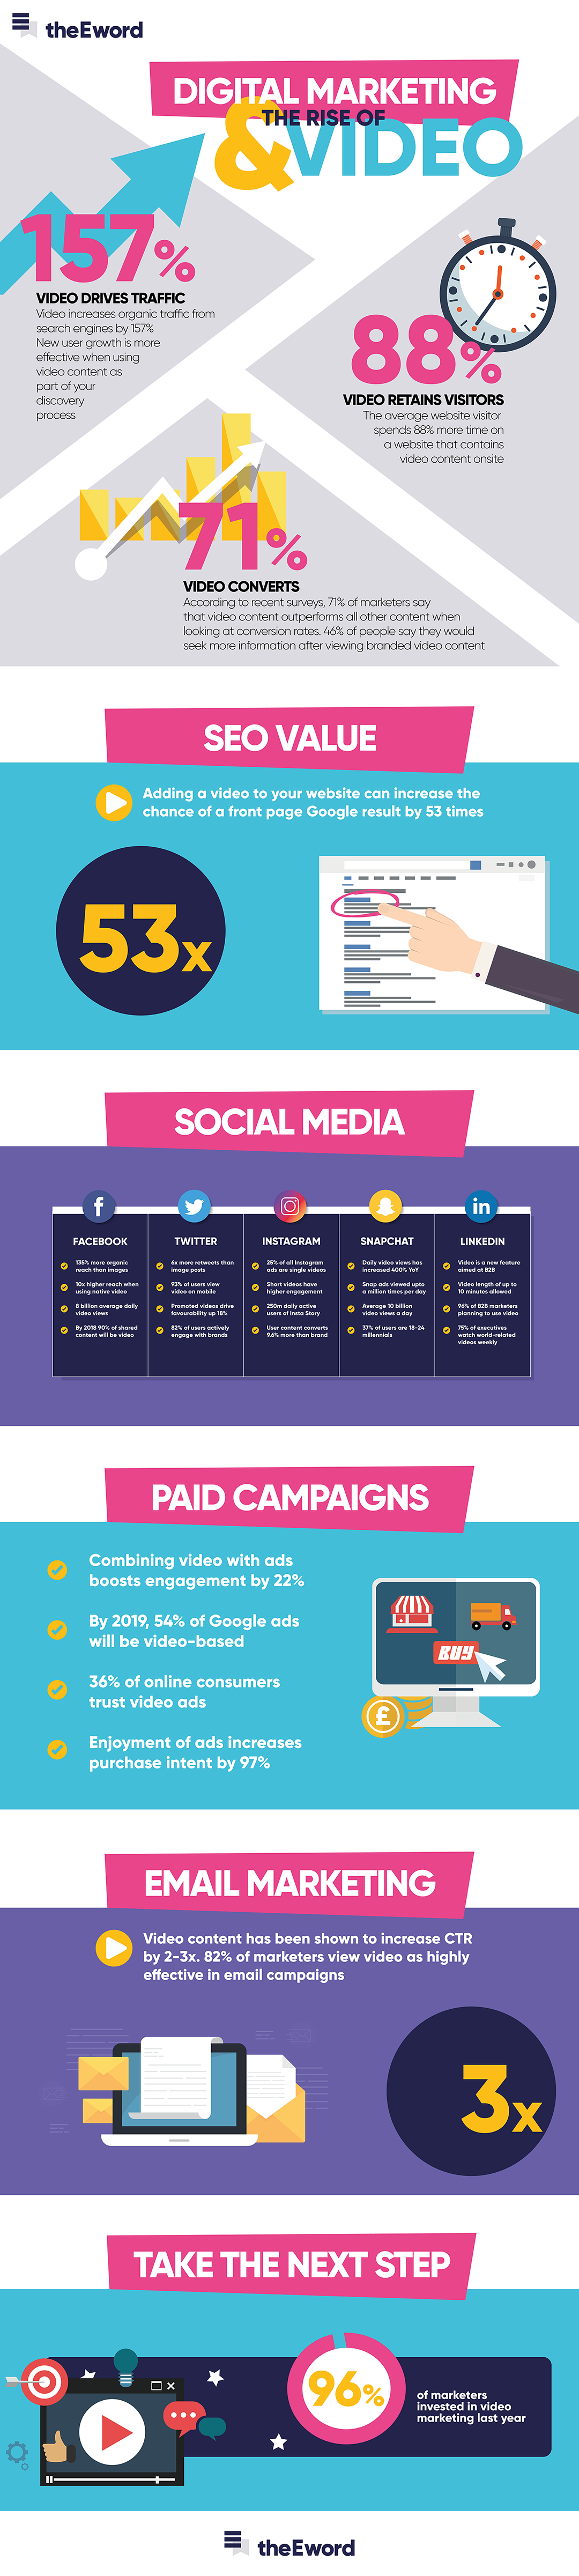 Rise of video in digital marketing infographic - optimised2.png